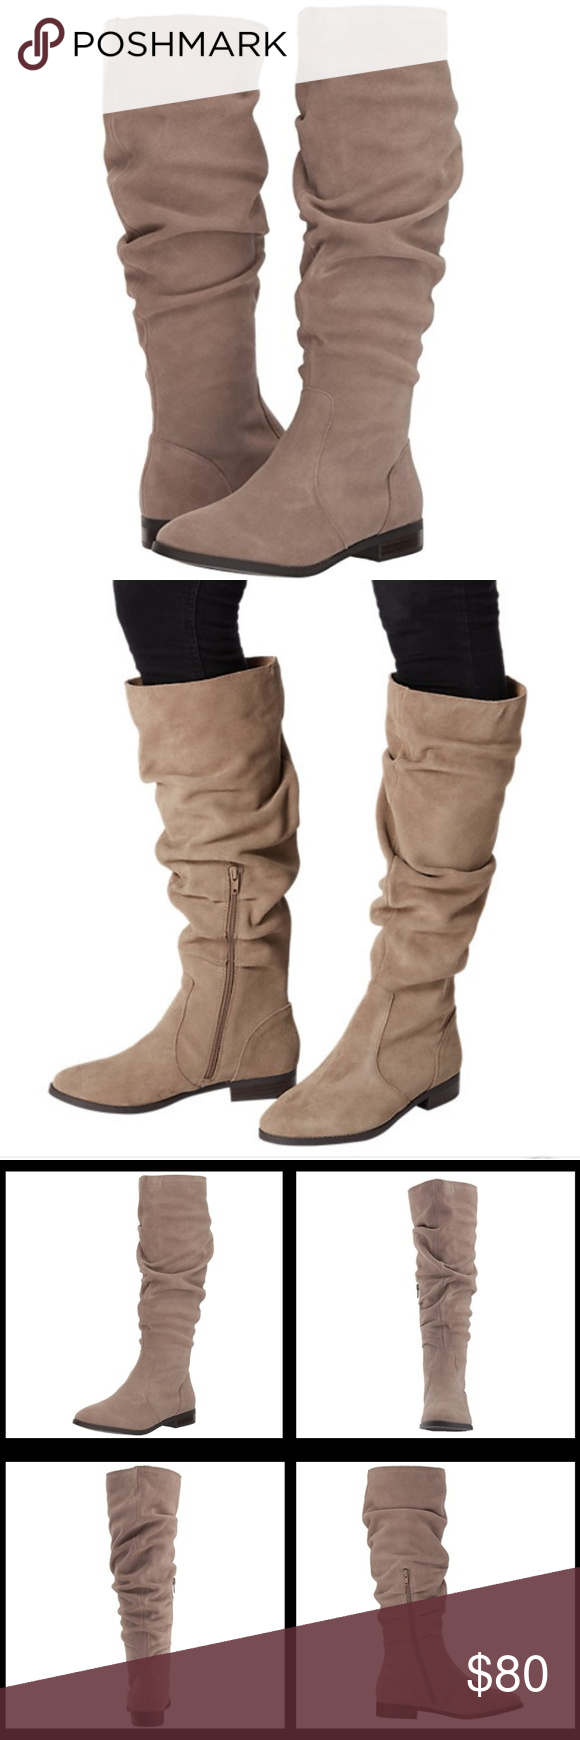 8936453bc03  NEW  Steve Madden Beacon Boots New Steve Madden Women s Beacon Boots Size   8 Color  Taupe Suede Soft suede surfaces   a slouchy scrunched shaft give  this ...